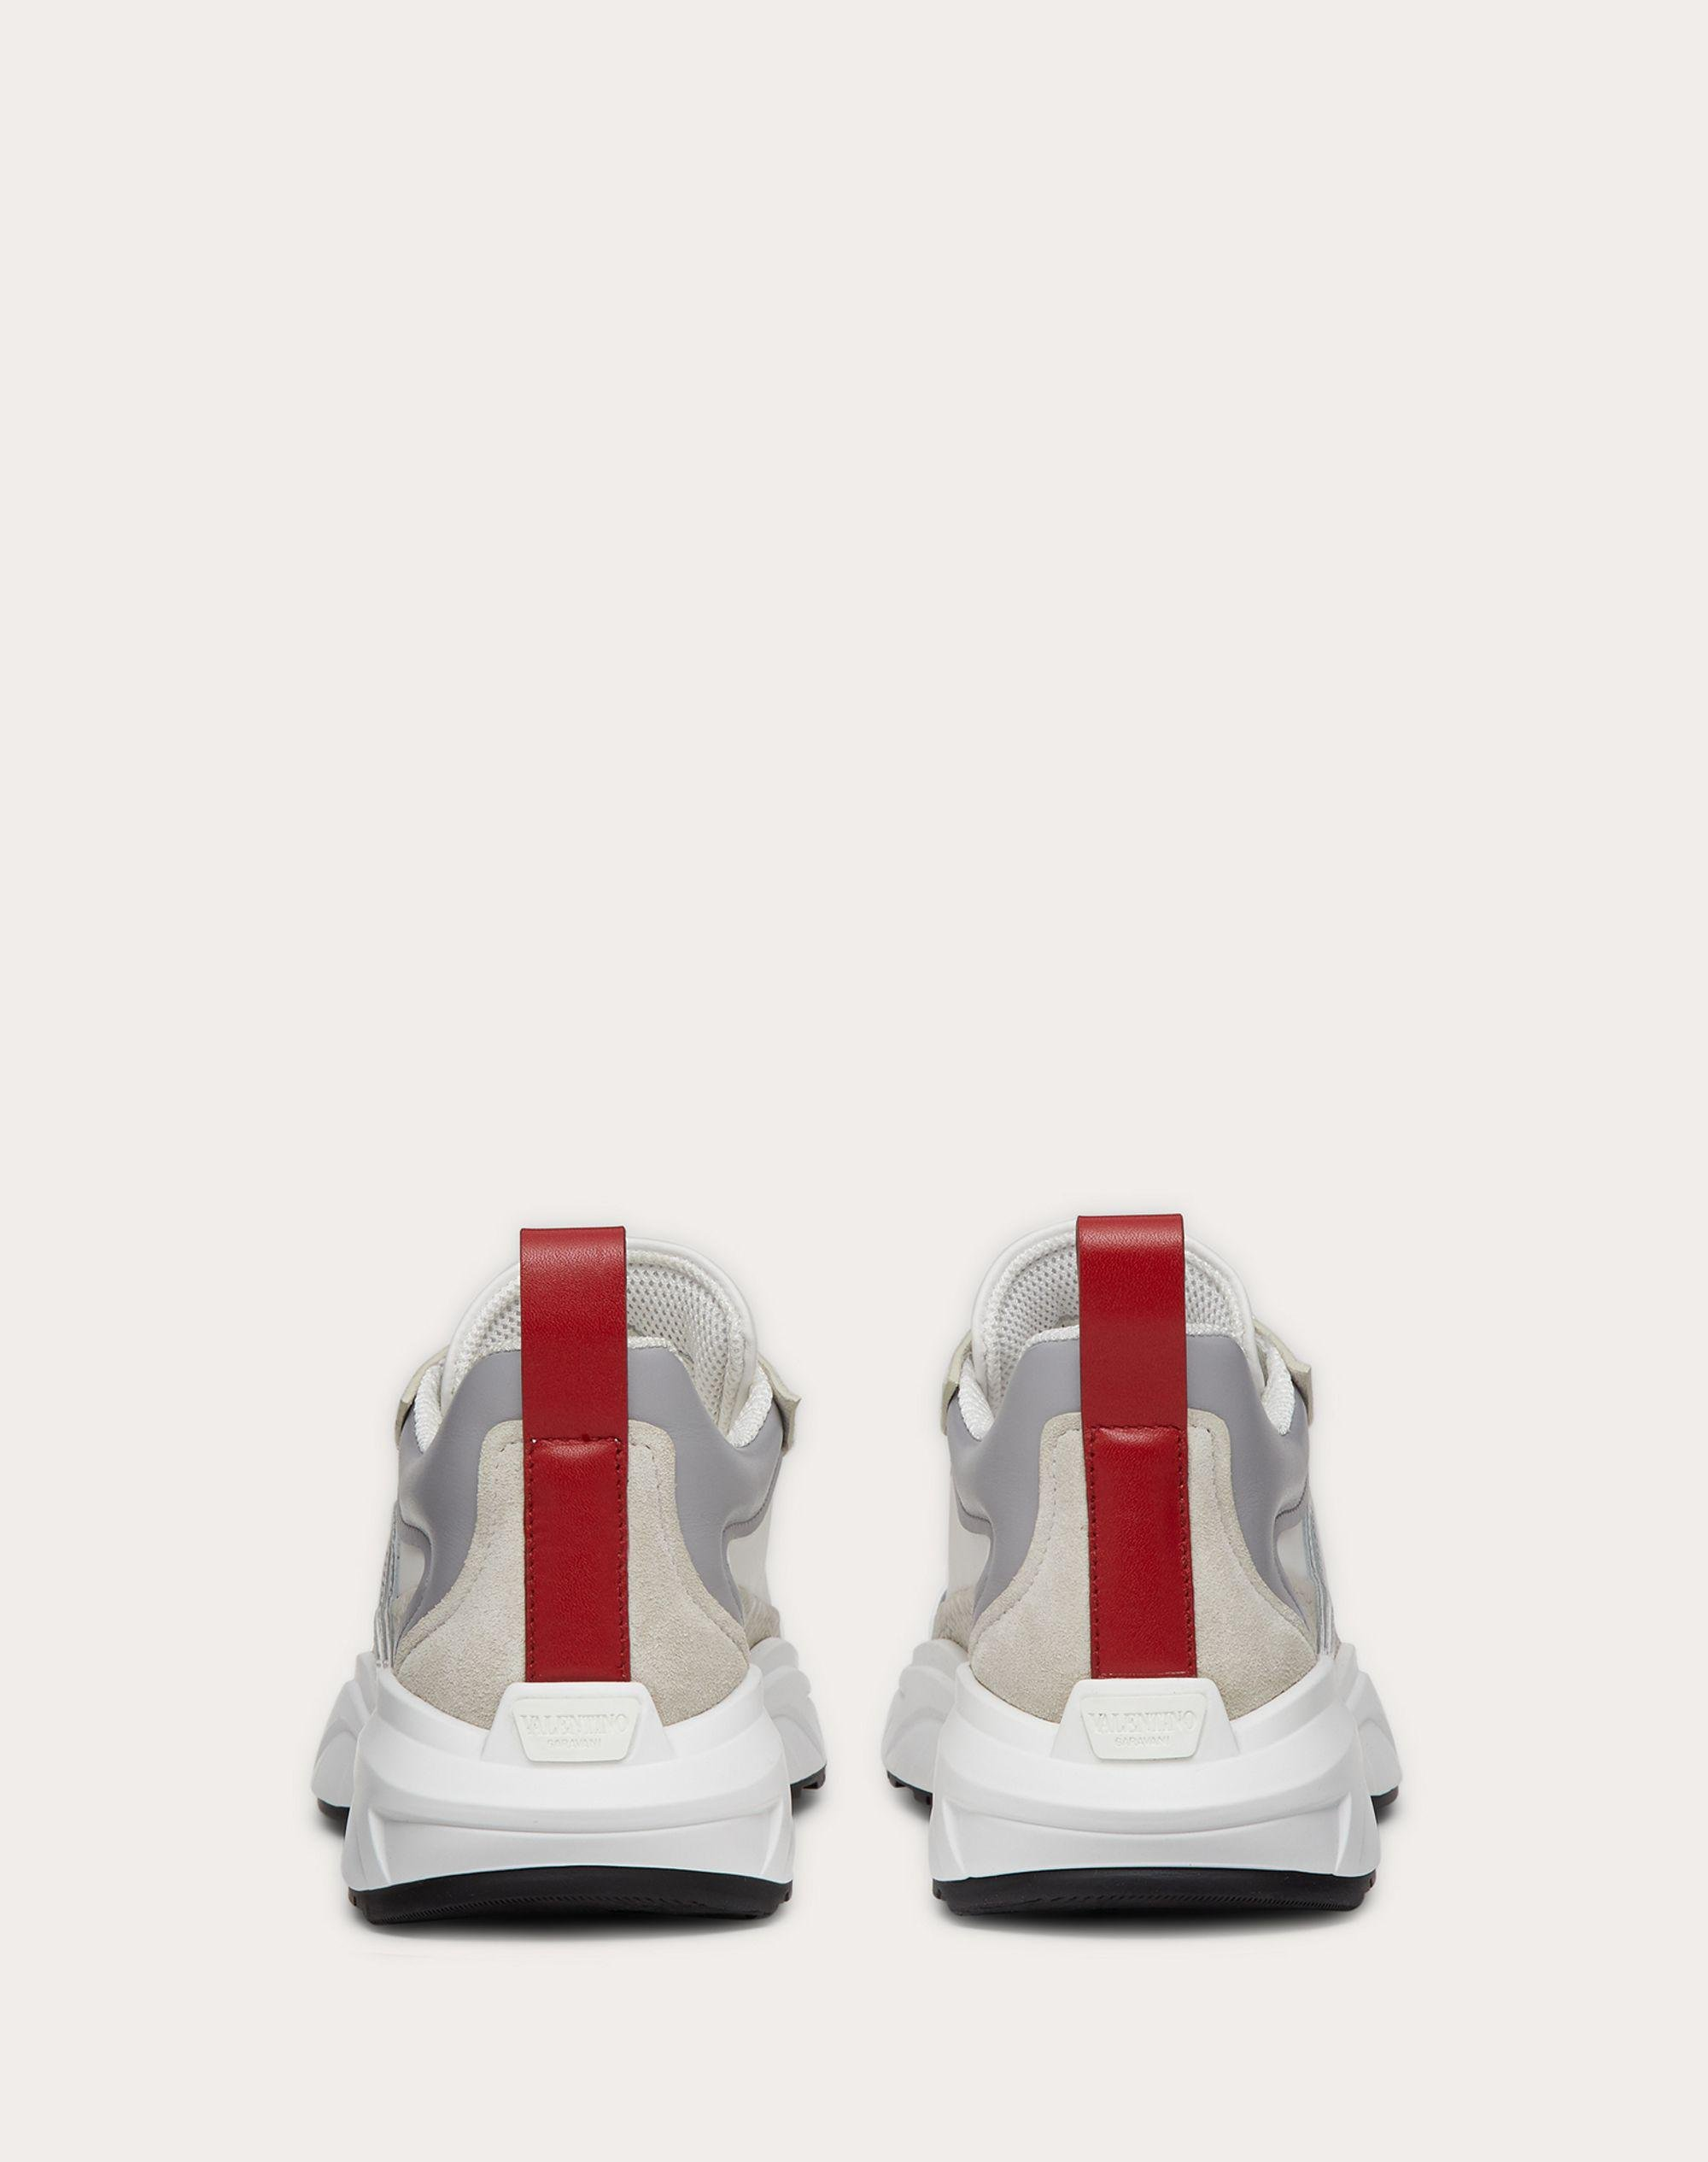 SHEGOES Sneaker in split leather and calfskin leather 2